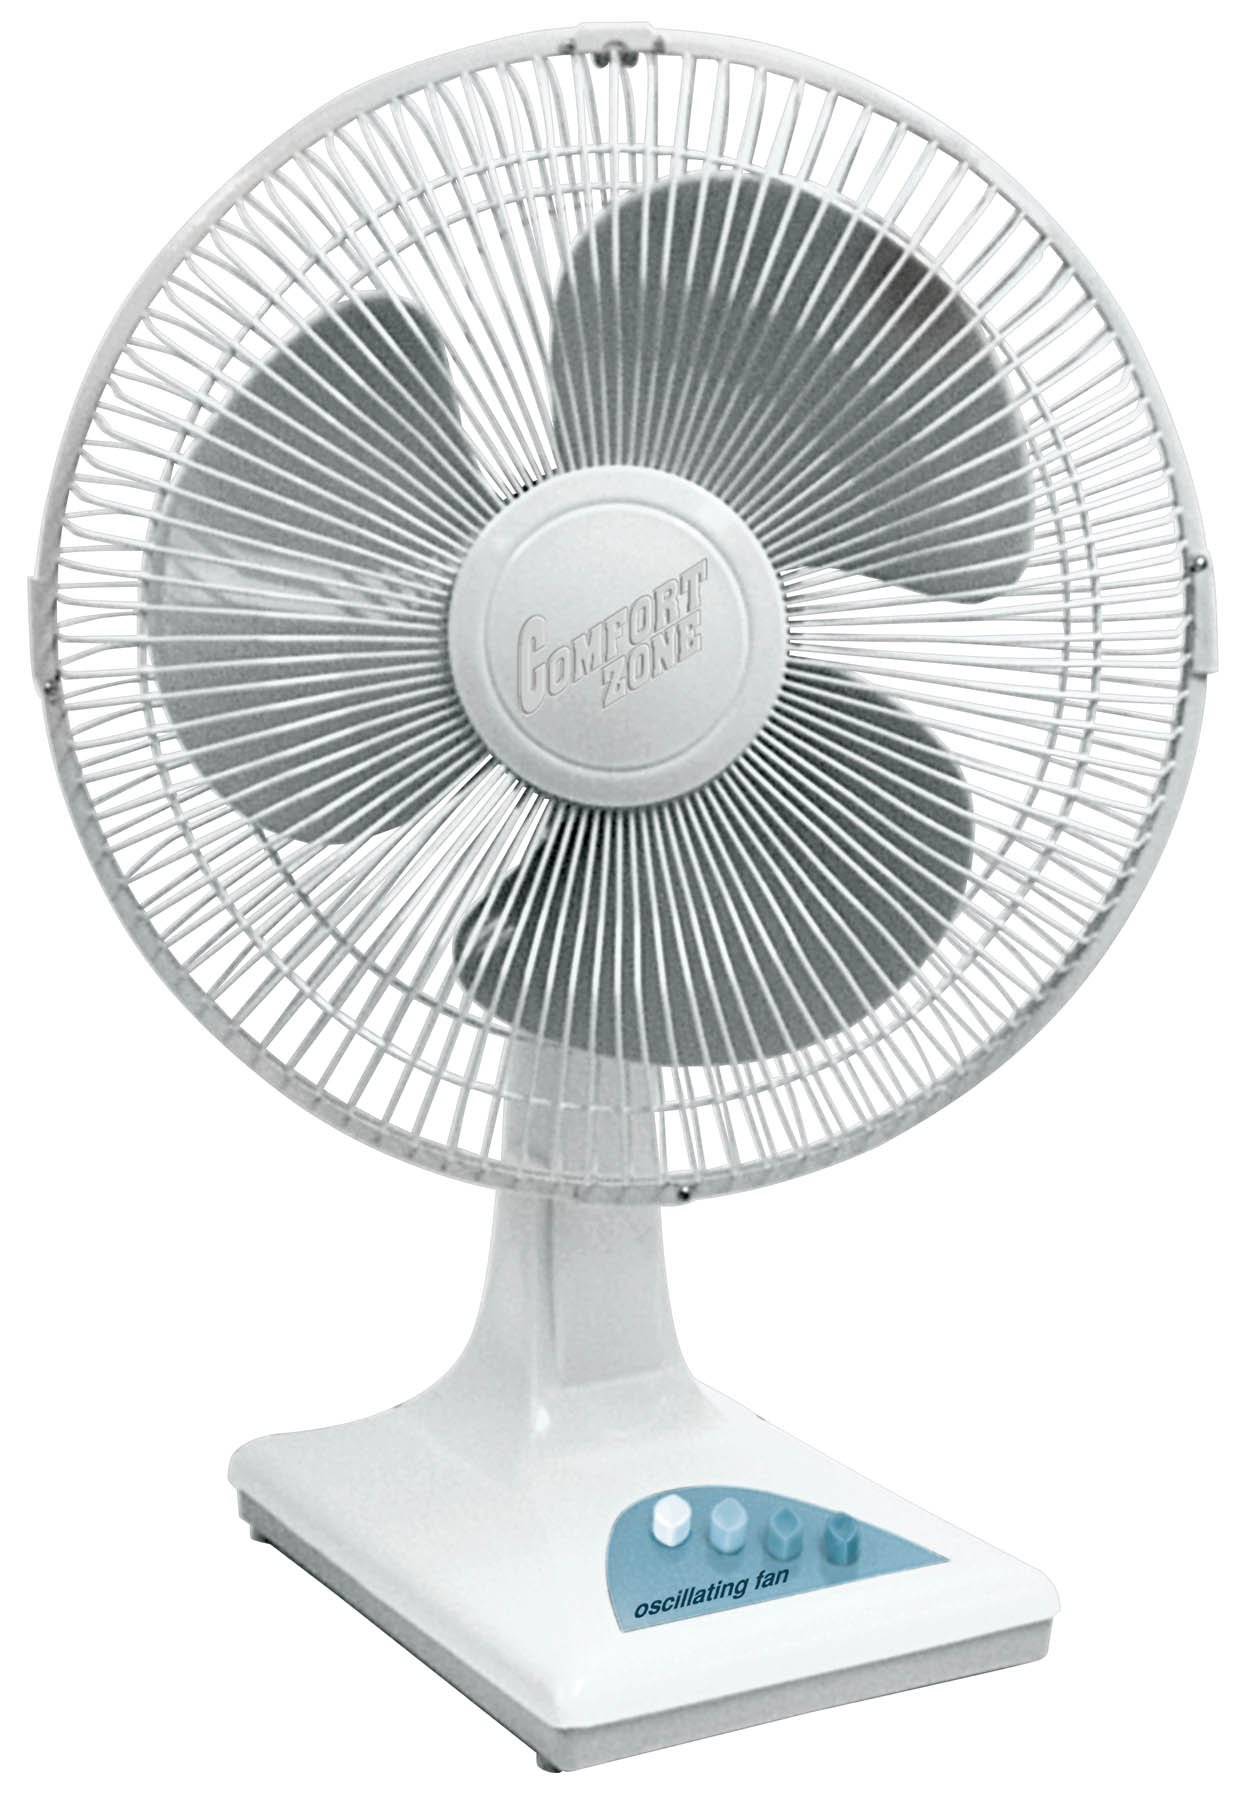 Comfort Zone CZ161WT Quiet 3-Speed 16-inch Oscillating Table Fan with Adjustable Tilt by CCC COMFORT ZONE